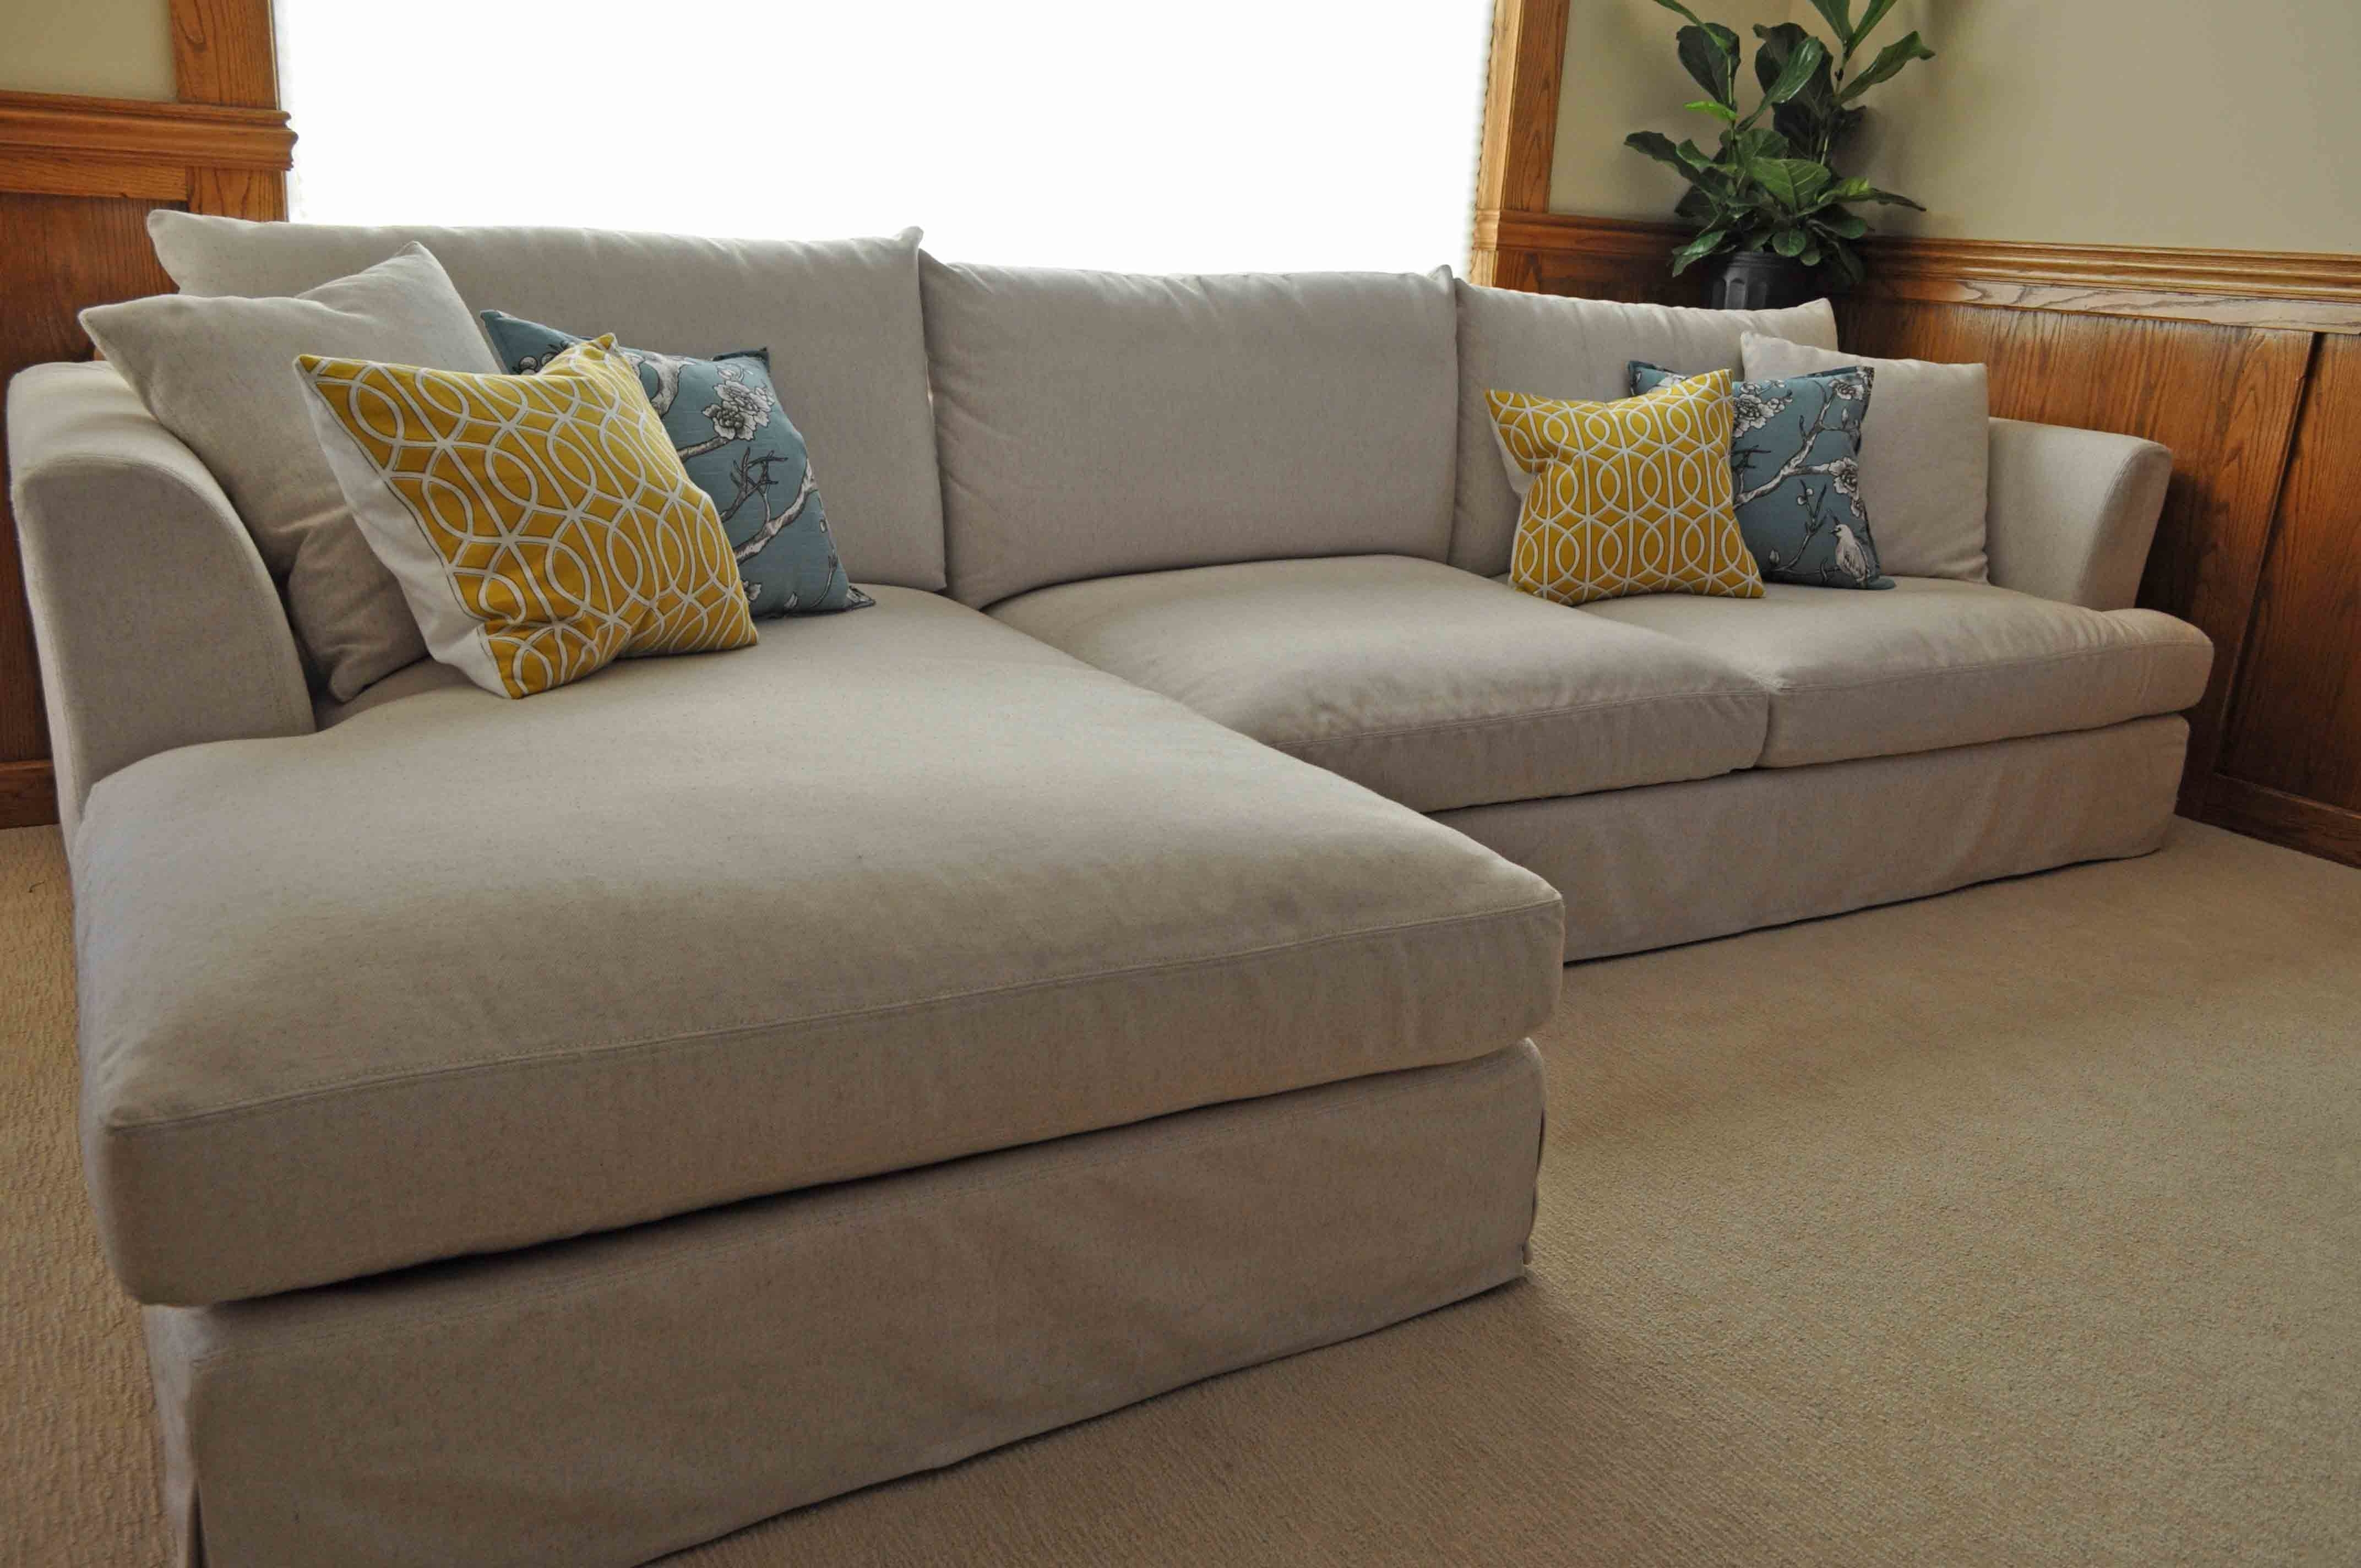 Large Comfortable Sectional Sofas For Widely Used Sofa : Comfortable Sectional Sofas Most Comfortable Sofa Ashley (View 7 of 20)